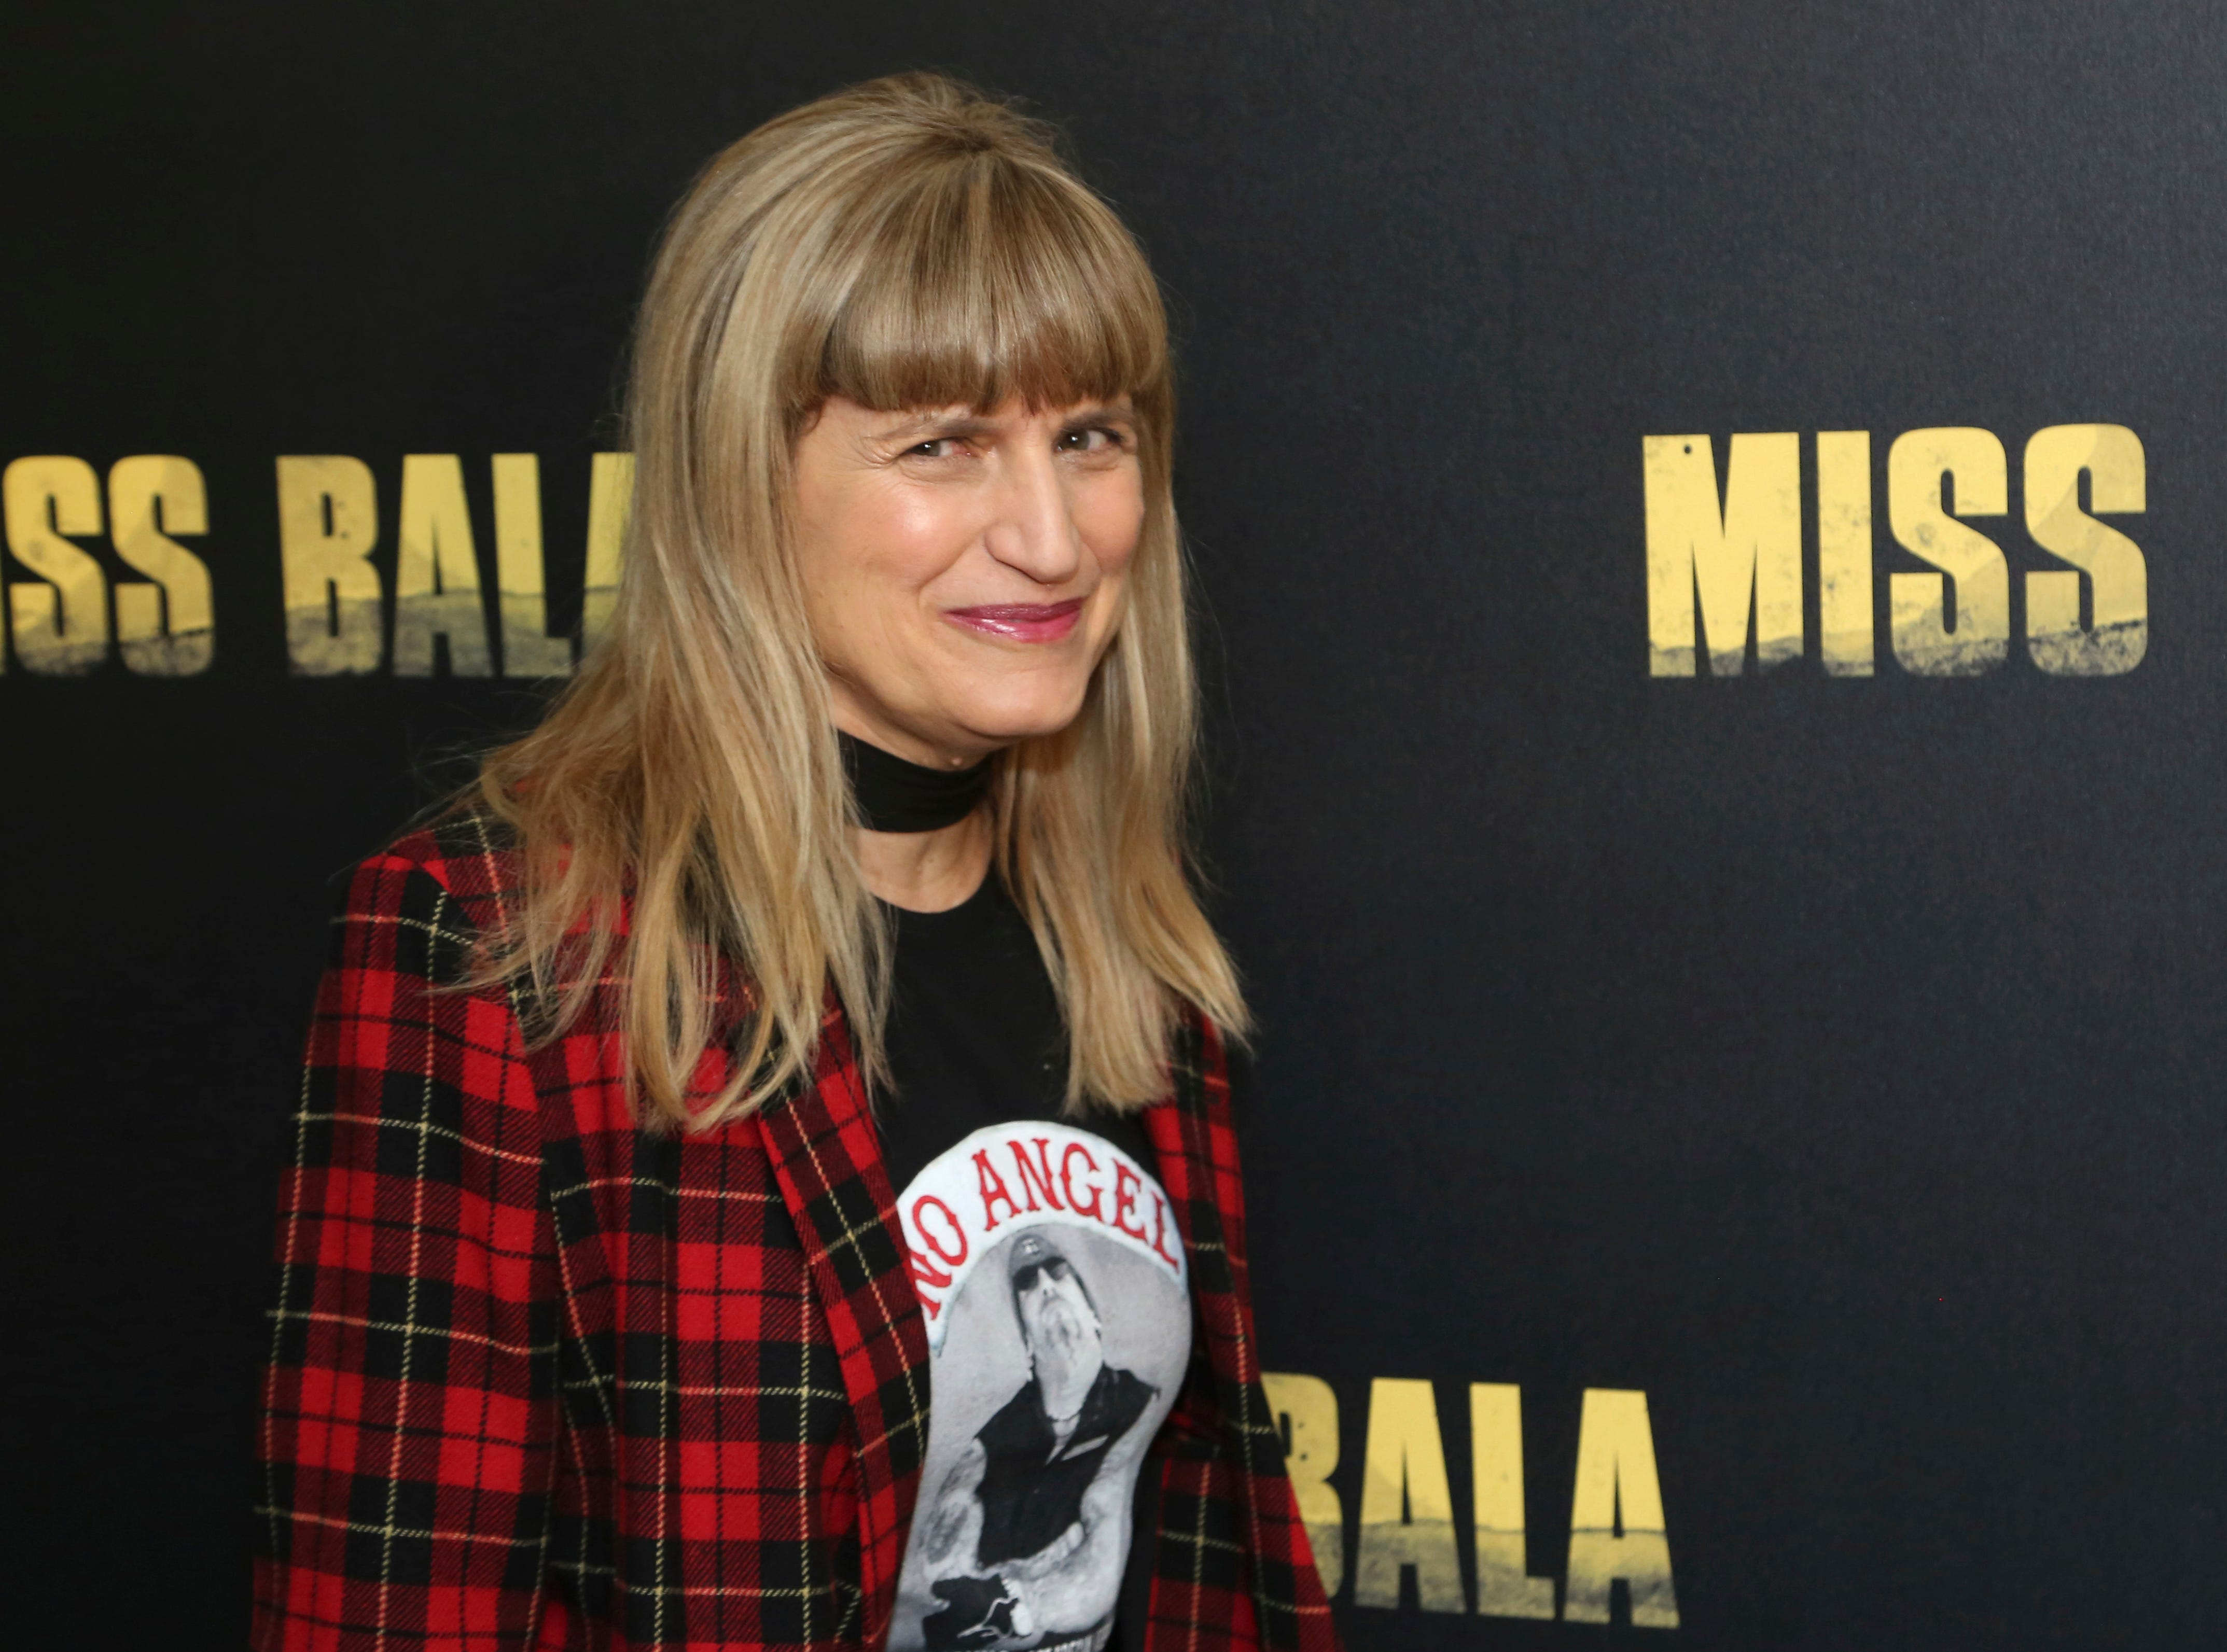 """Catherine Hardwicke poses for a photo at the """"Miss Bala"""" Photo Call at The London West Hollywood on Sunday, Jan. 13, 2019 in West Hollywood, Calif."""